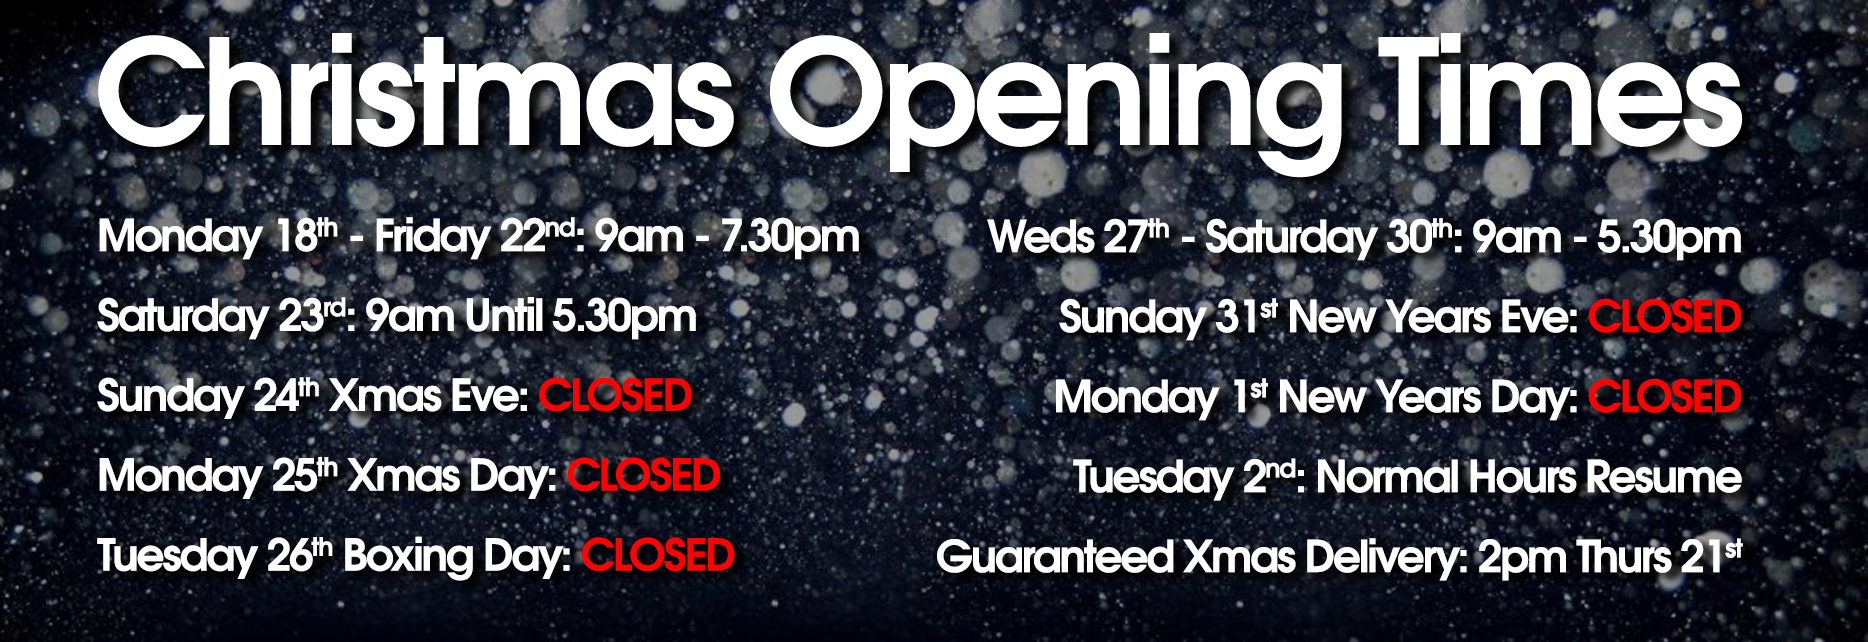 Christmas Opening Times!